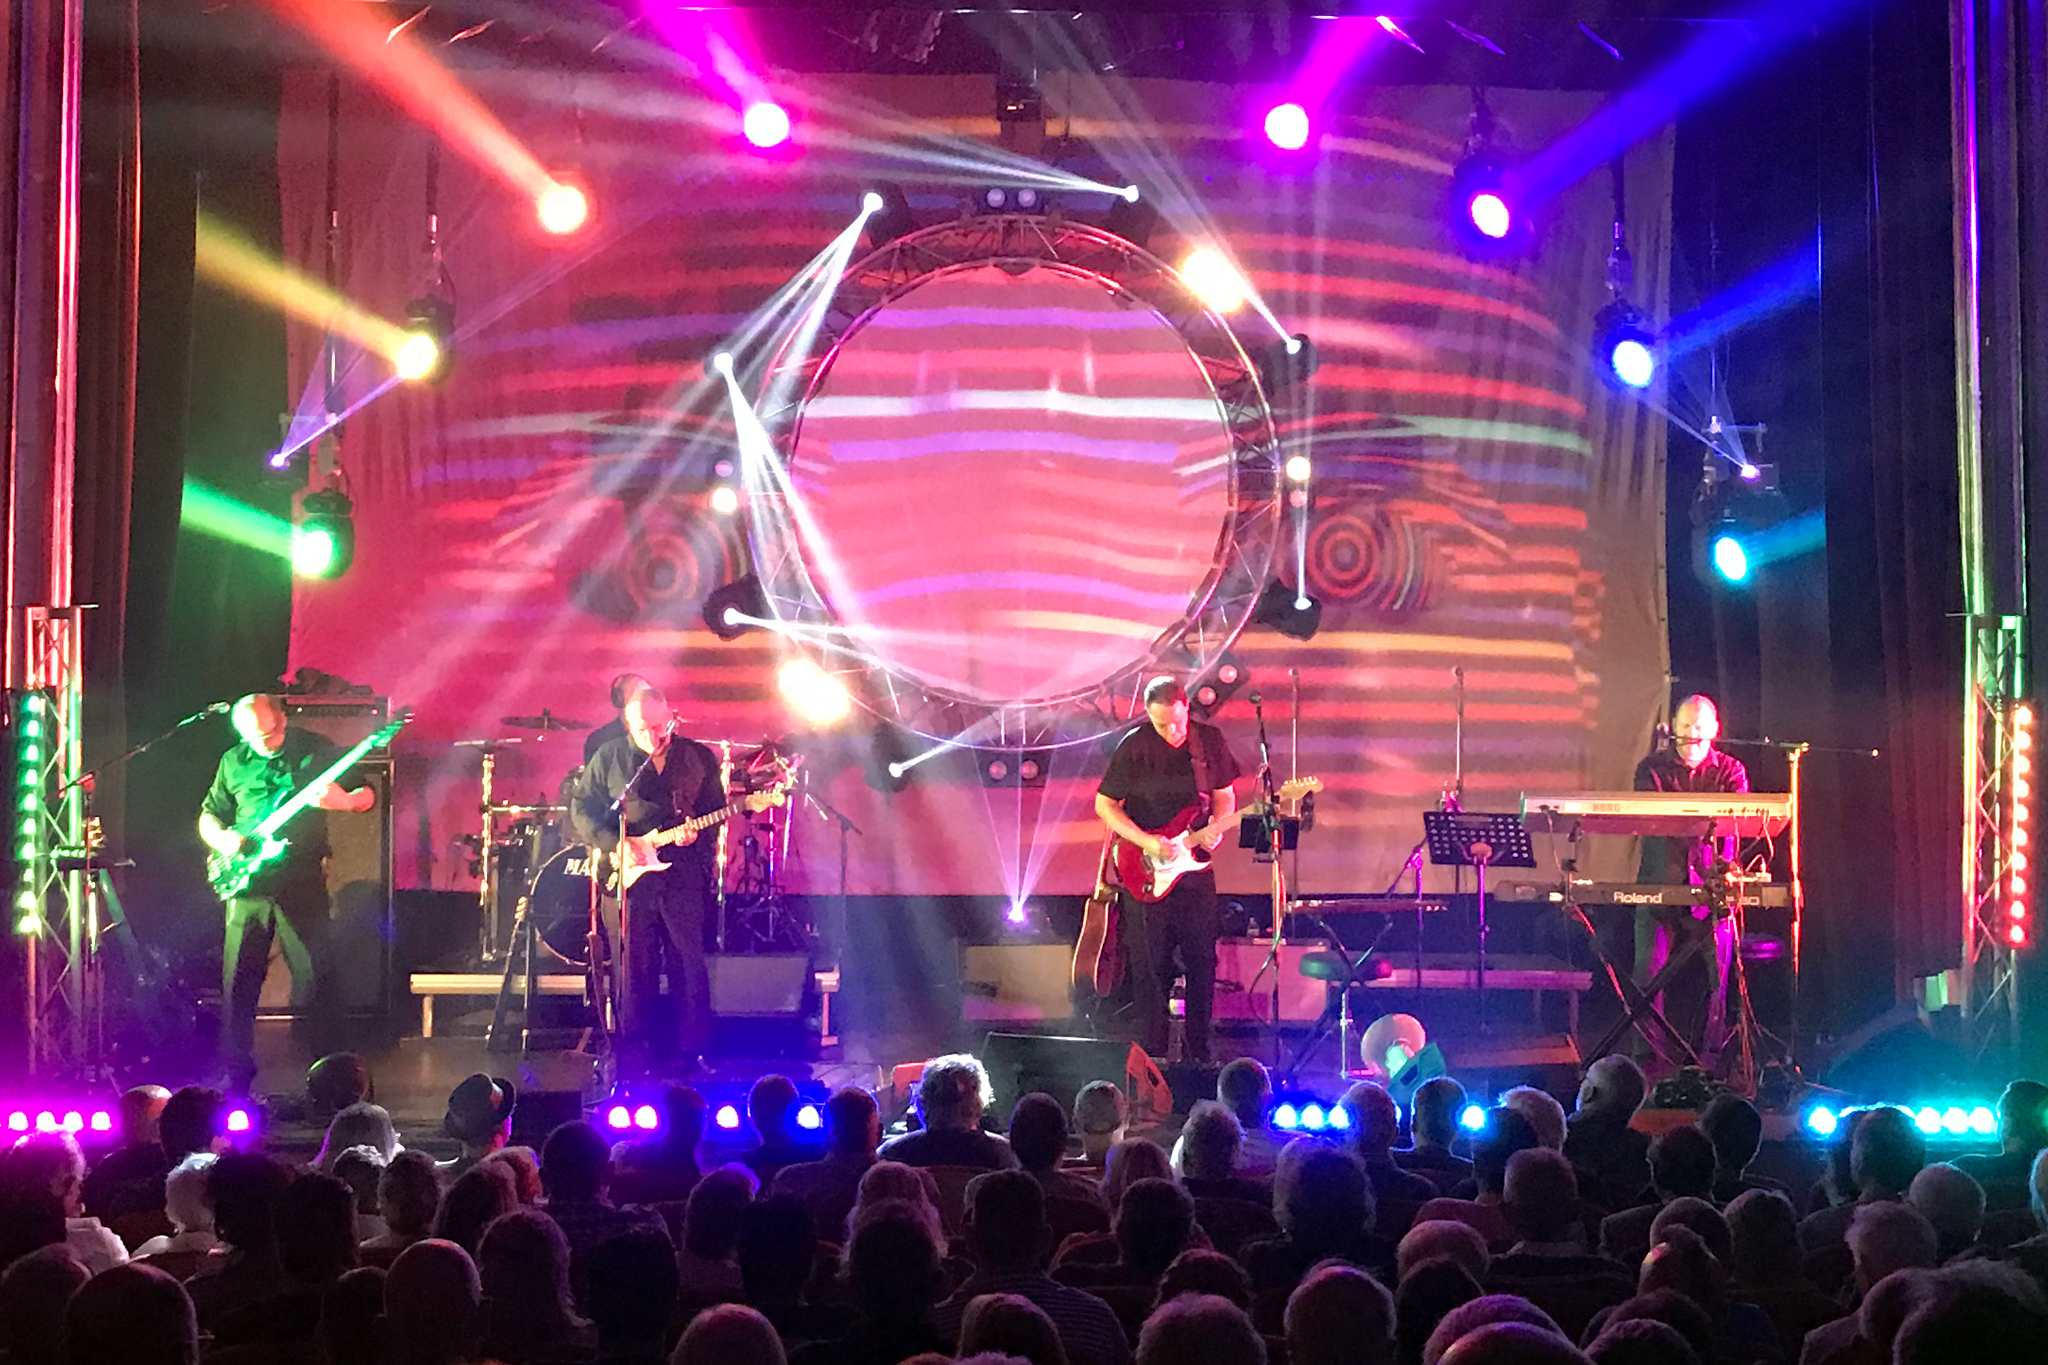 The Floyd Effect returns to the Tivoli for its fourth visit